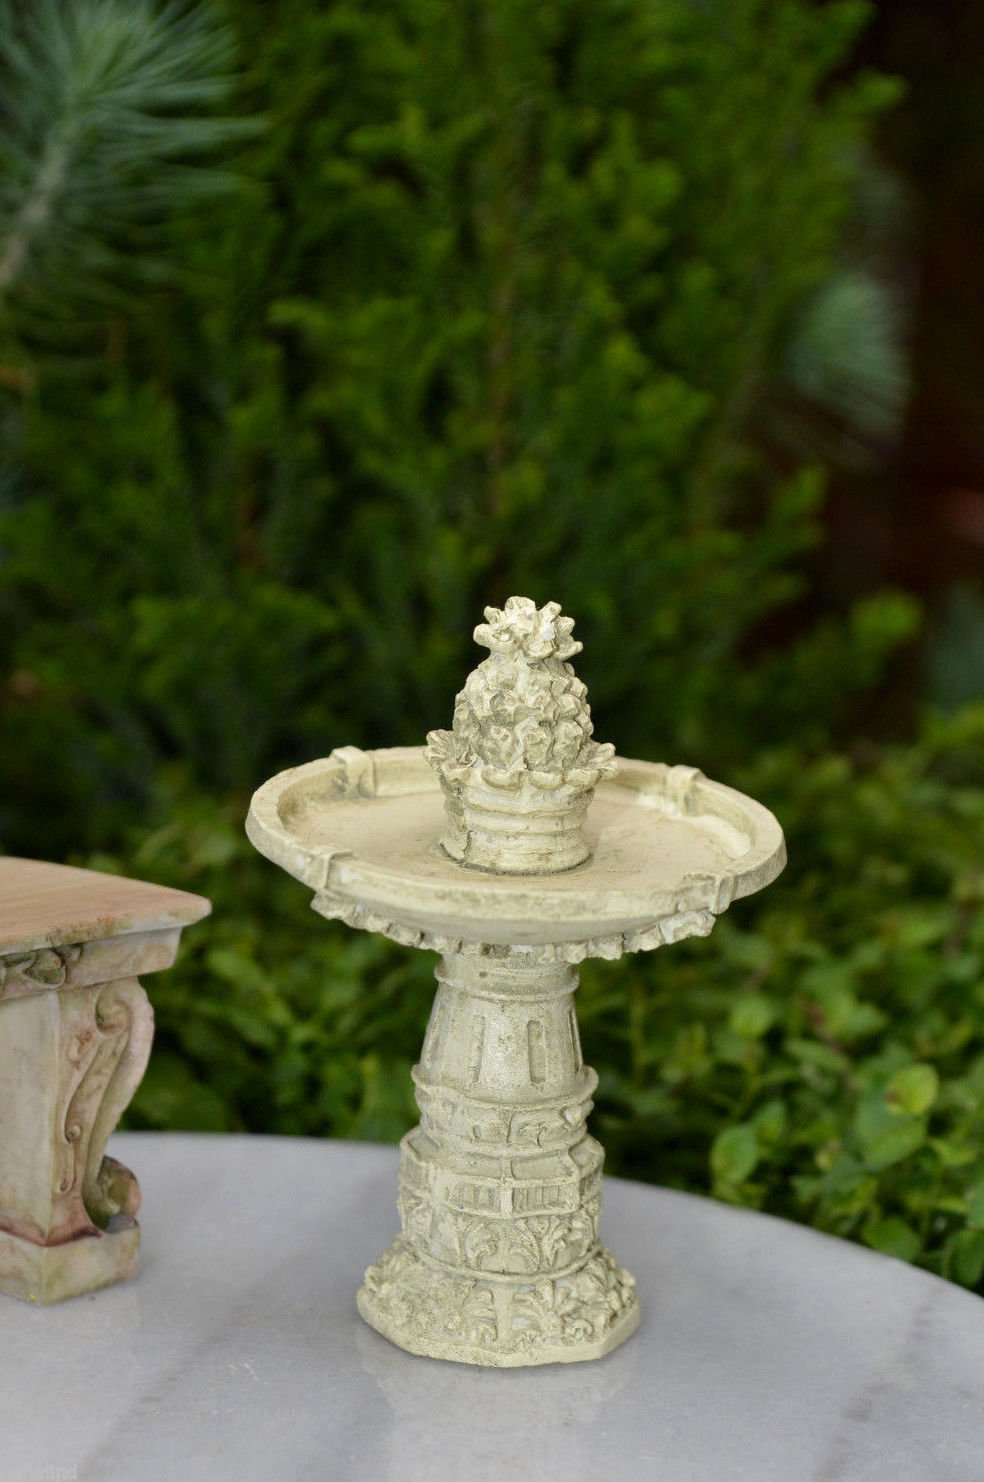 Miniature Dollhouse Fairy Garden Antiqued Ivory Resin Pineapple Fountain by Miniature